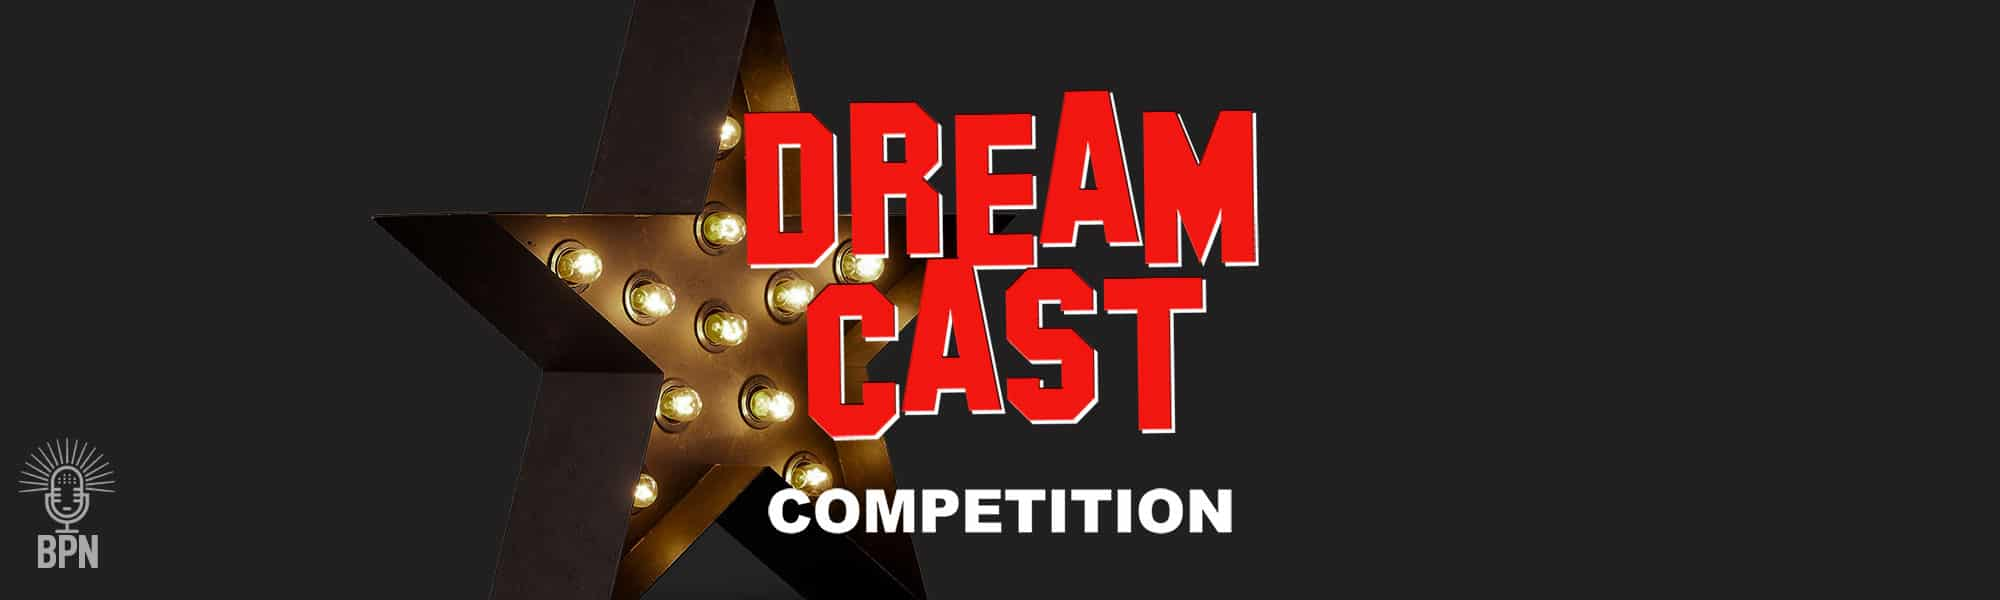 Dream Cast Competition BPN Broadway Podcast Network